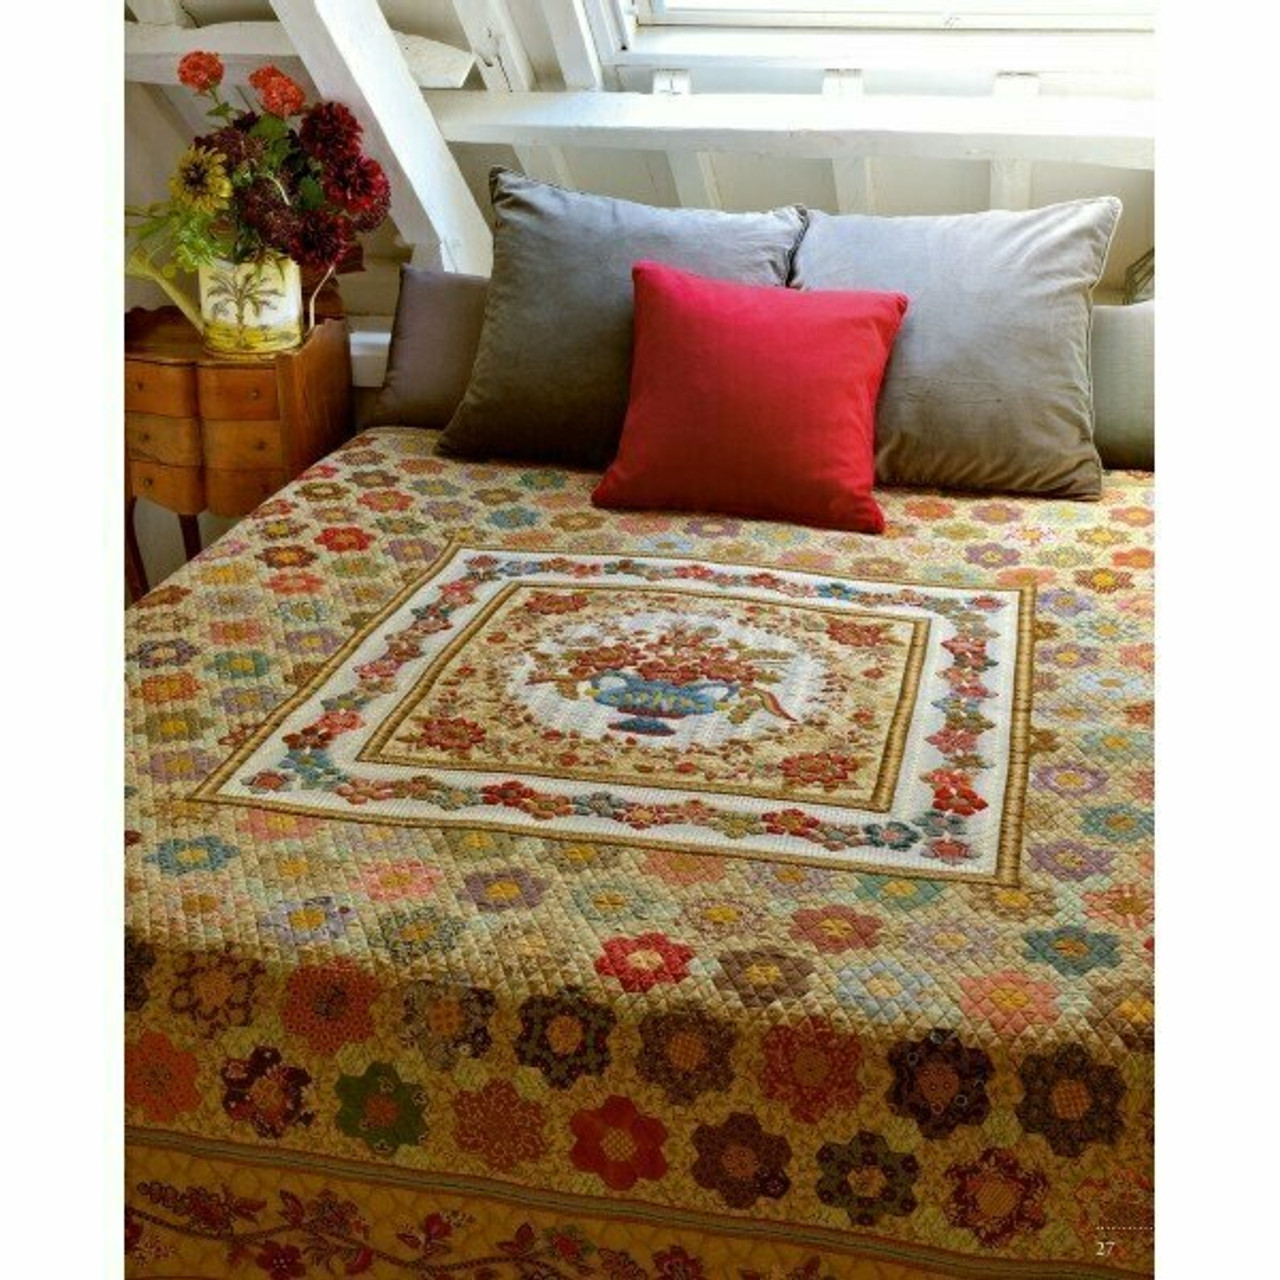 Primarily Quilts 2 by Di Ford